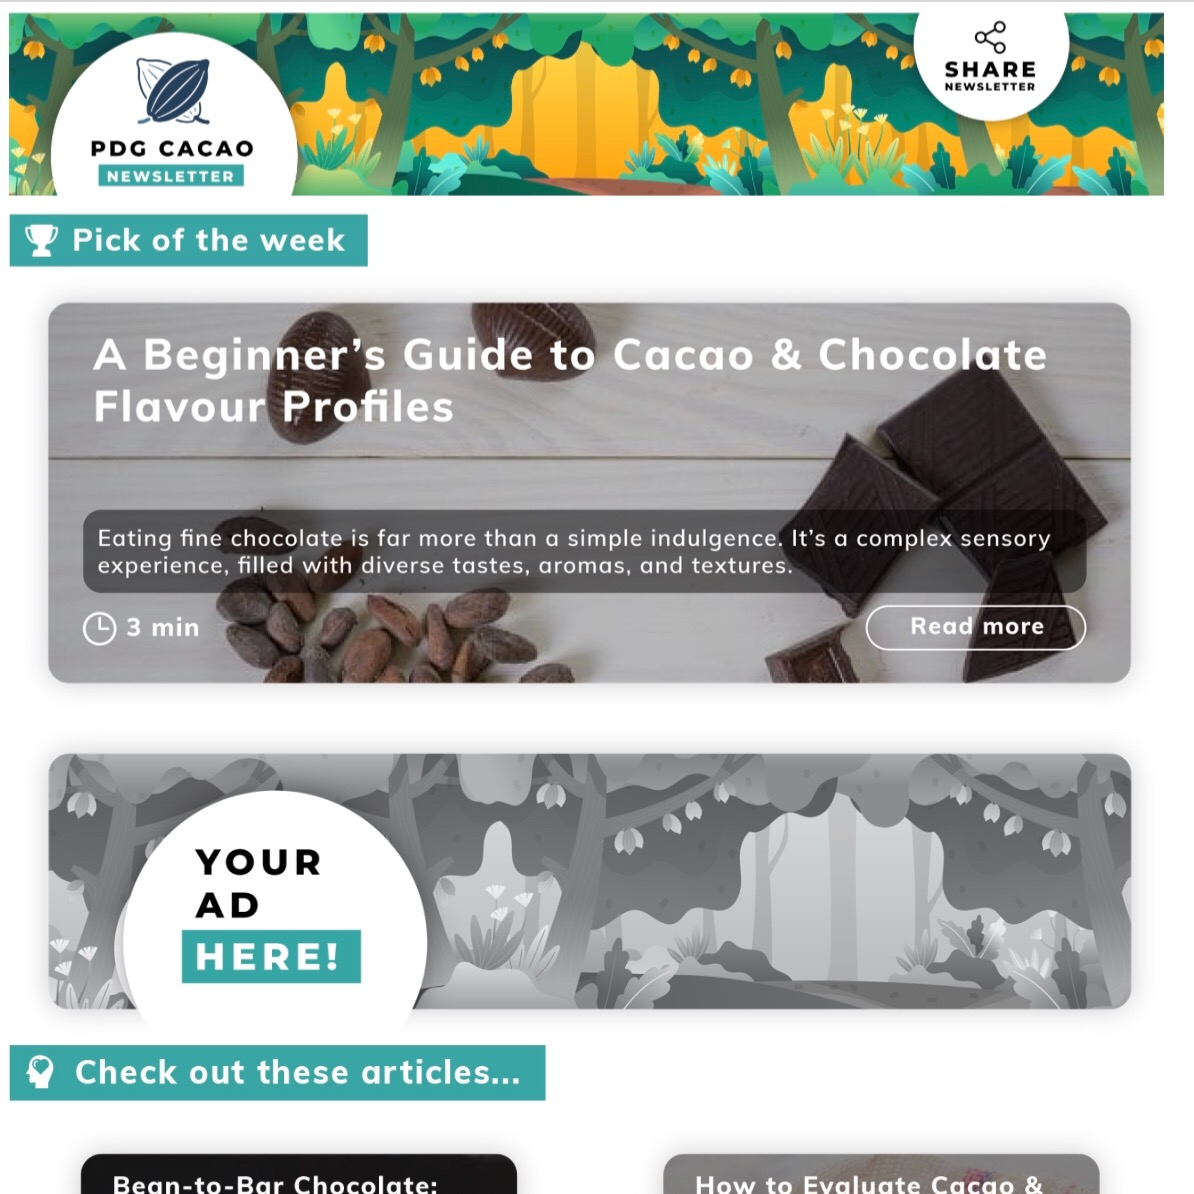 PDG Cacao Newsletter Sign-Up